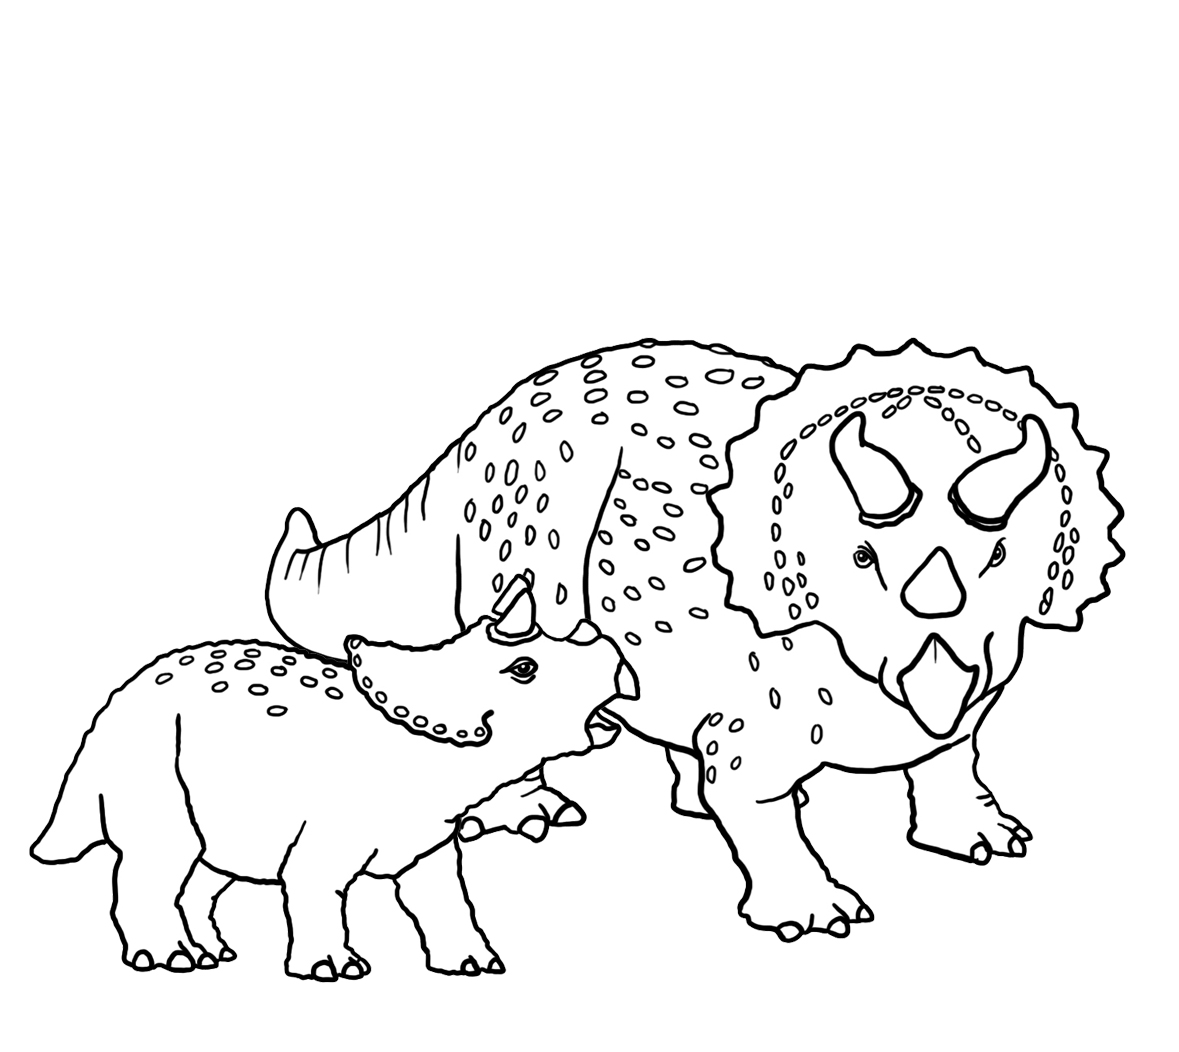 Christmas Dinosaurs - Dinosaurs Adult Coloring Pages | 1052x1179